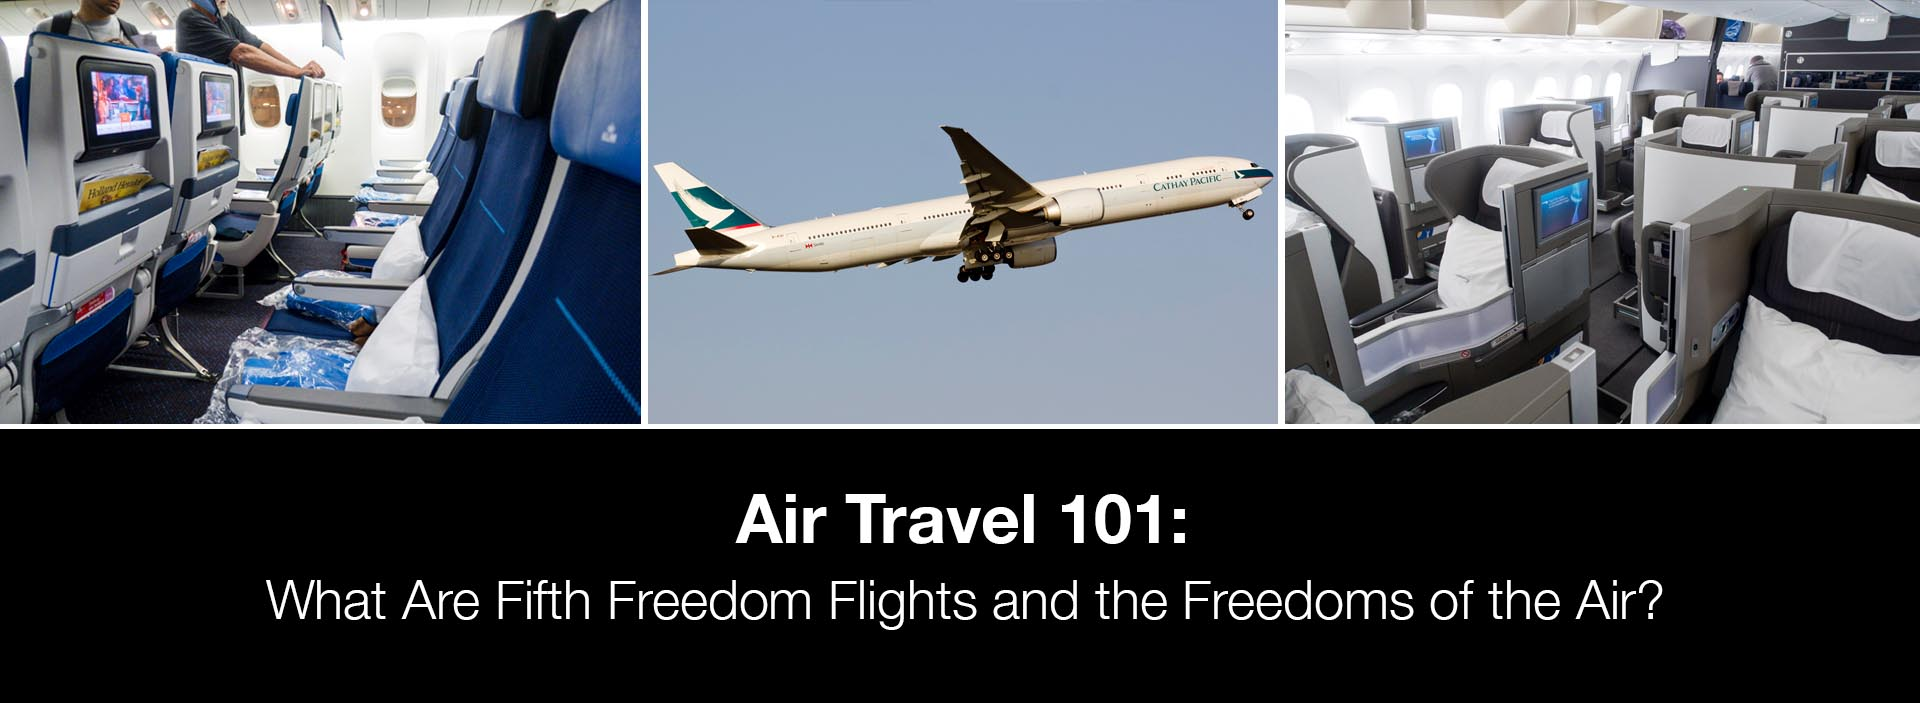 What Are Fifth Freedom Flights and the Freedoms of the Air?